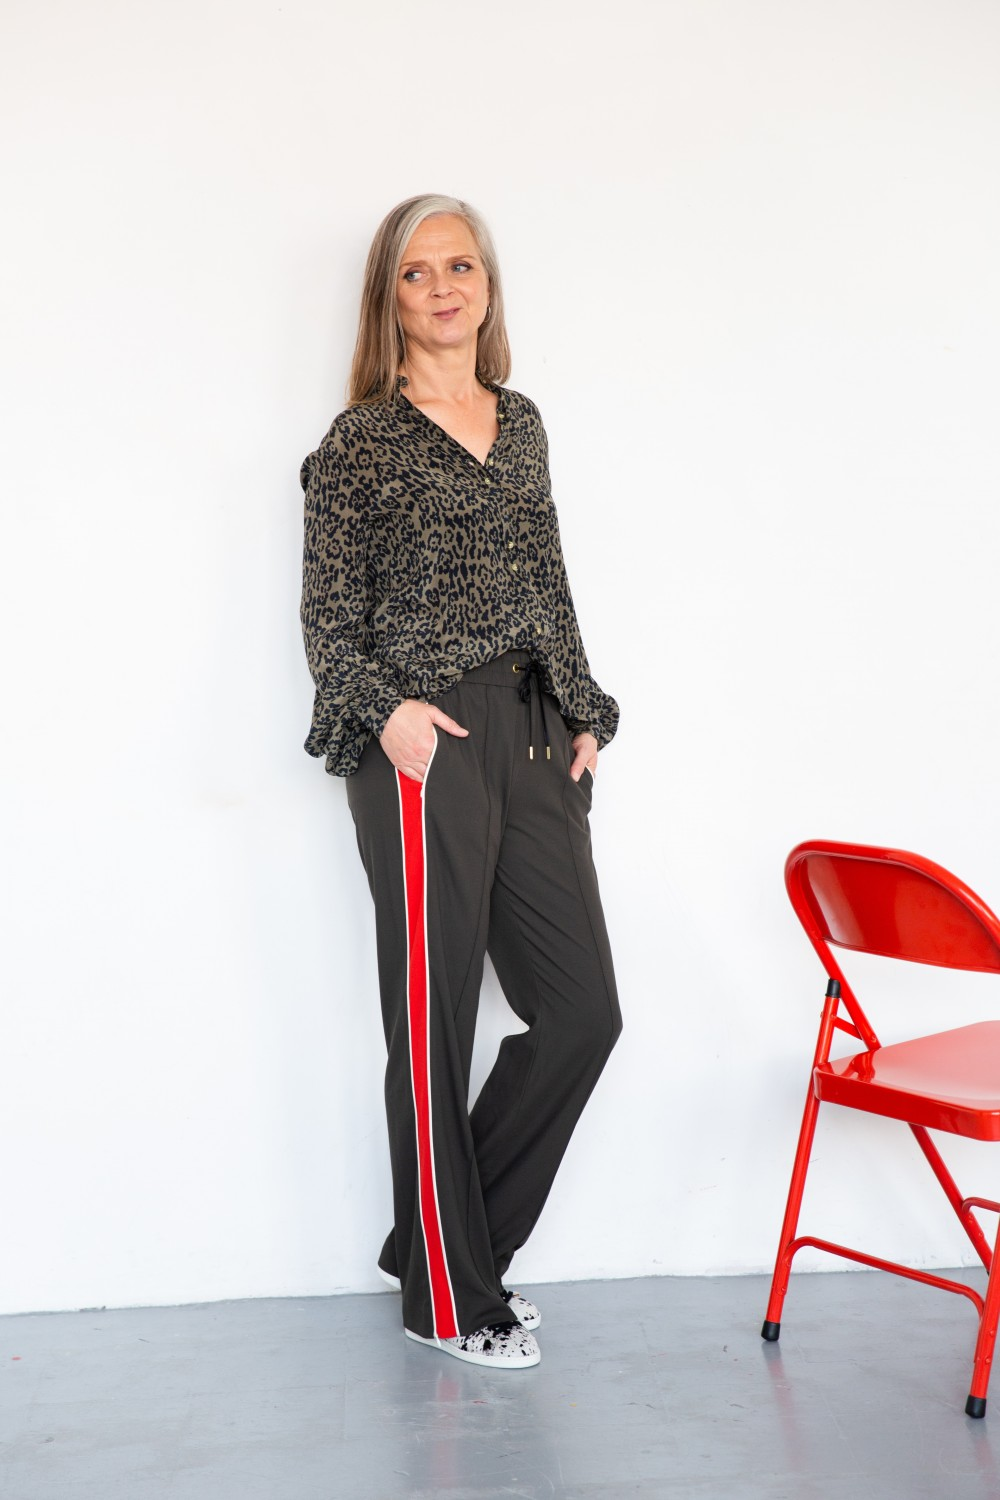 This is the ultimate working from home outfit